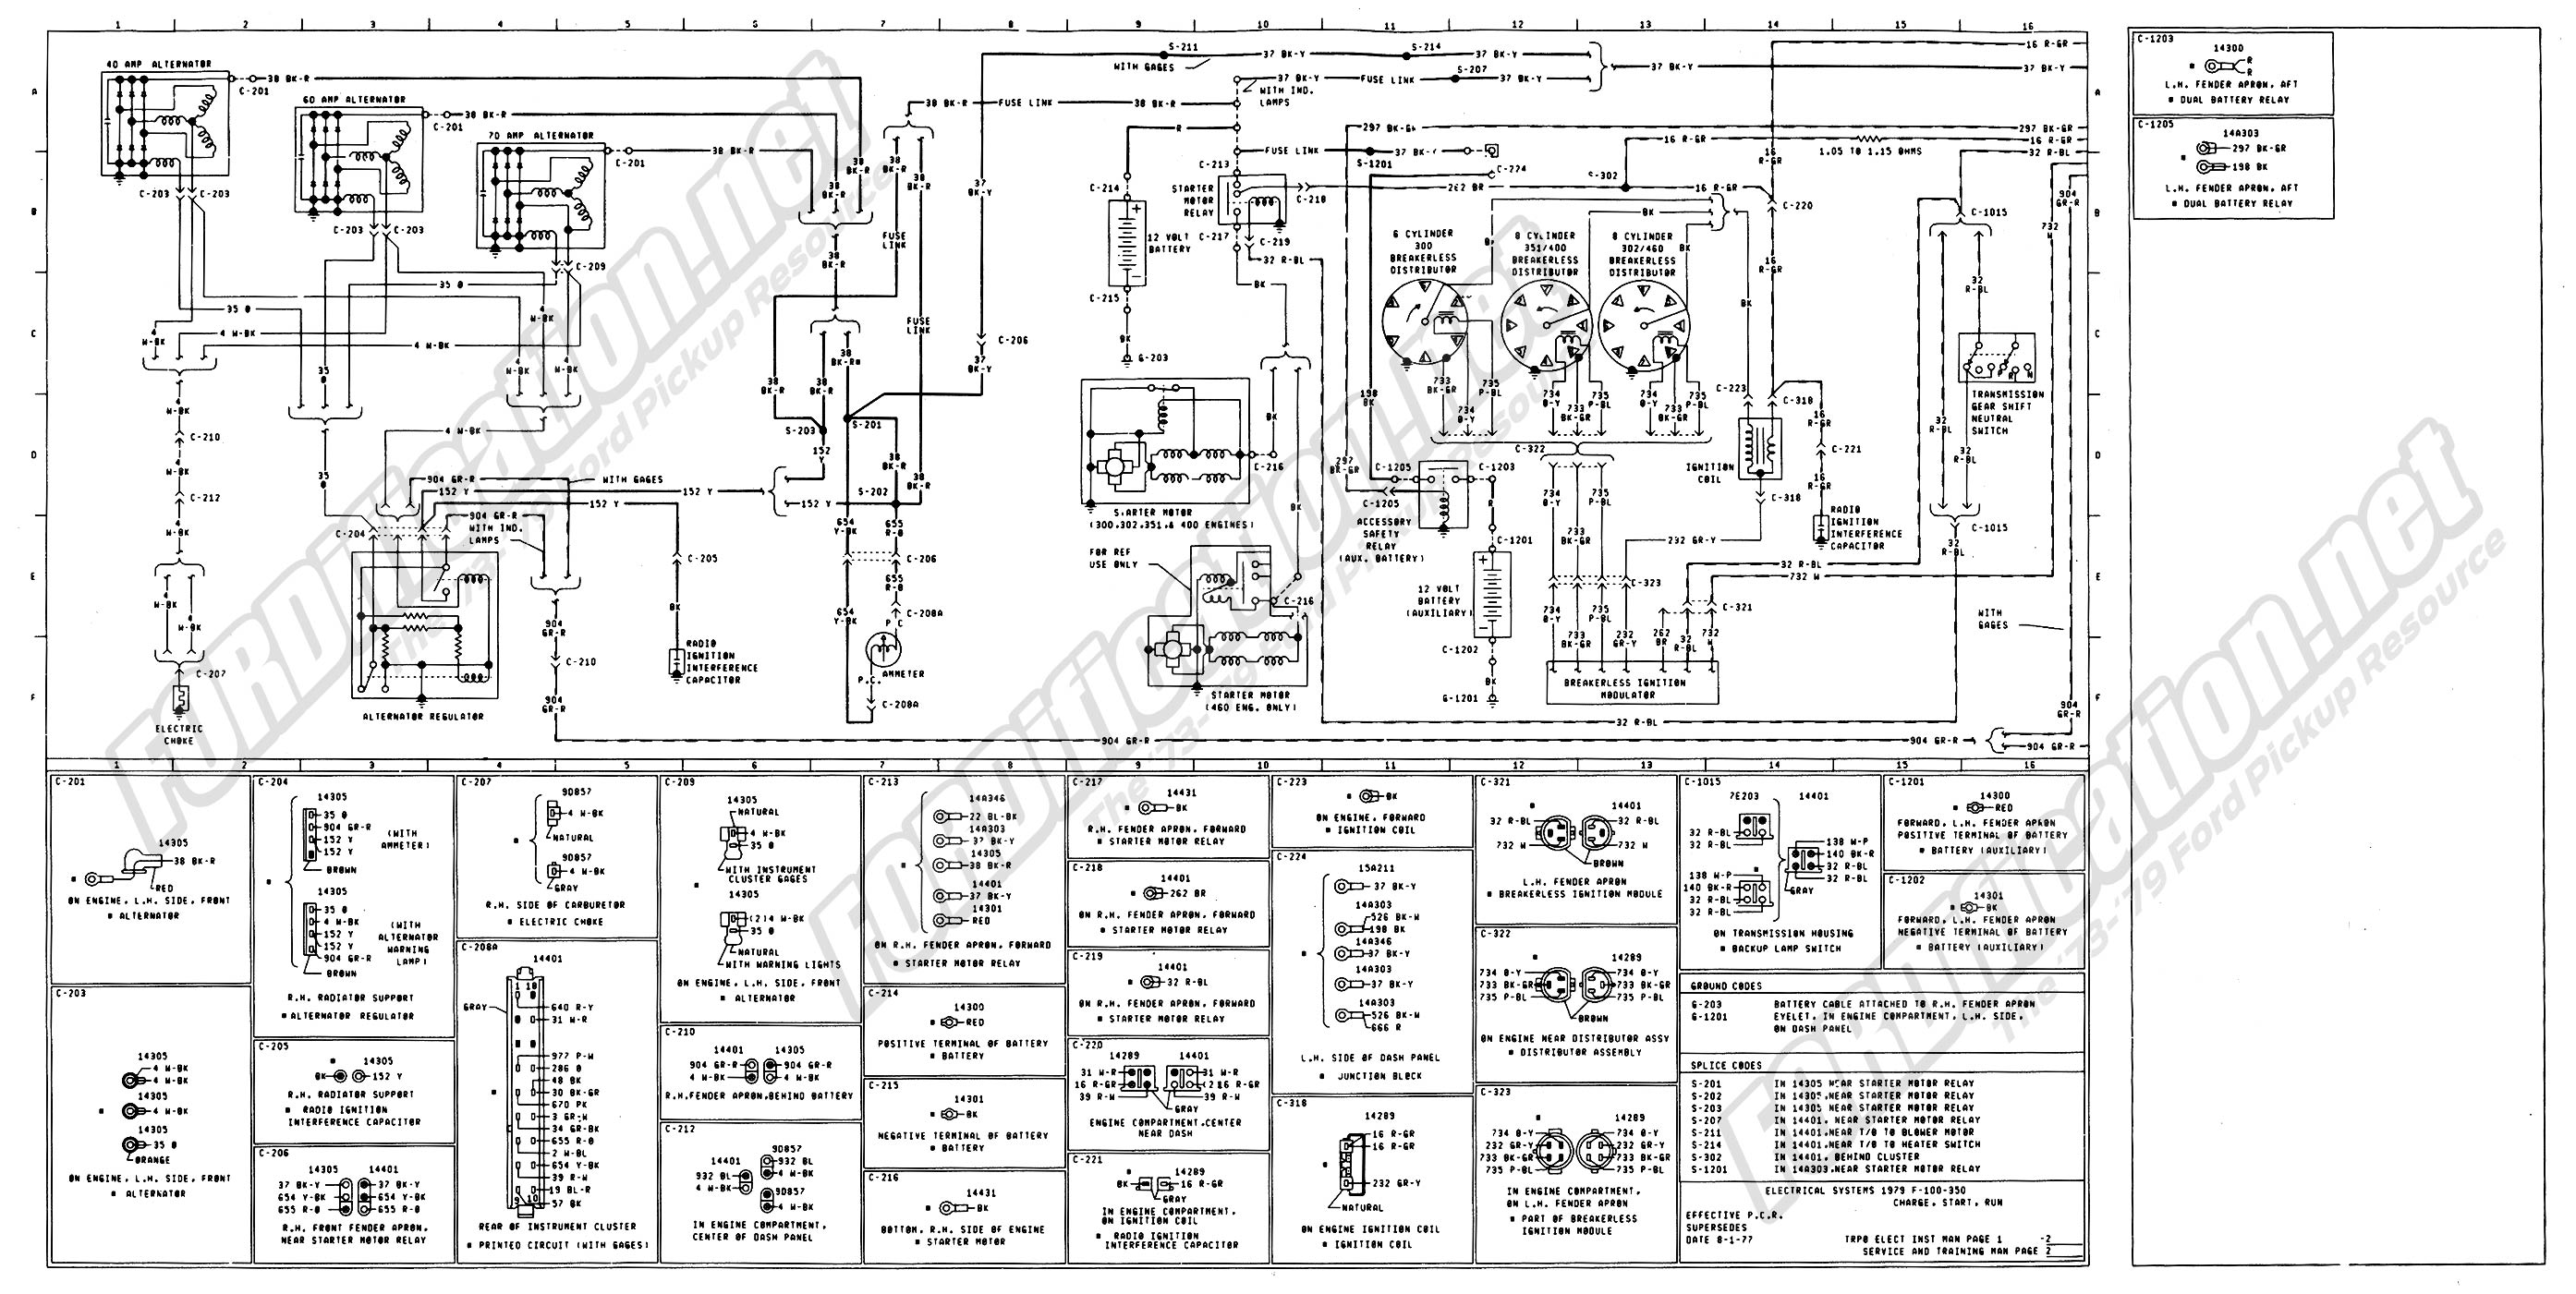 wiring_79master_2of9 1973 1979 ford truck wiring diagrams & schematics fordification net  at reclaimingppi.co